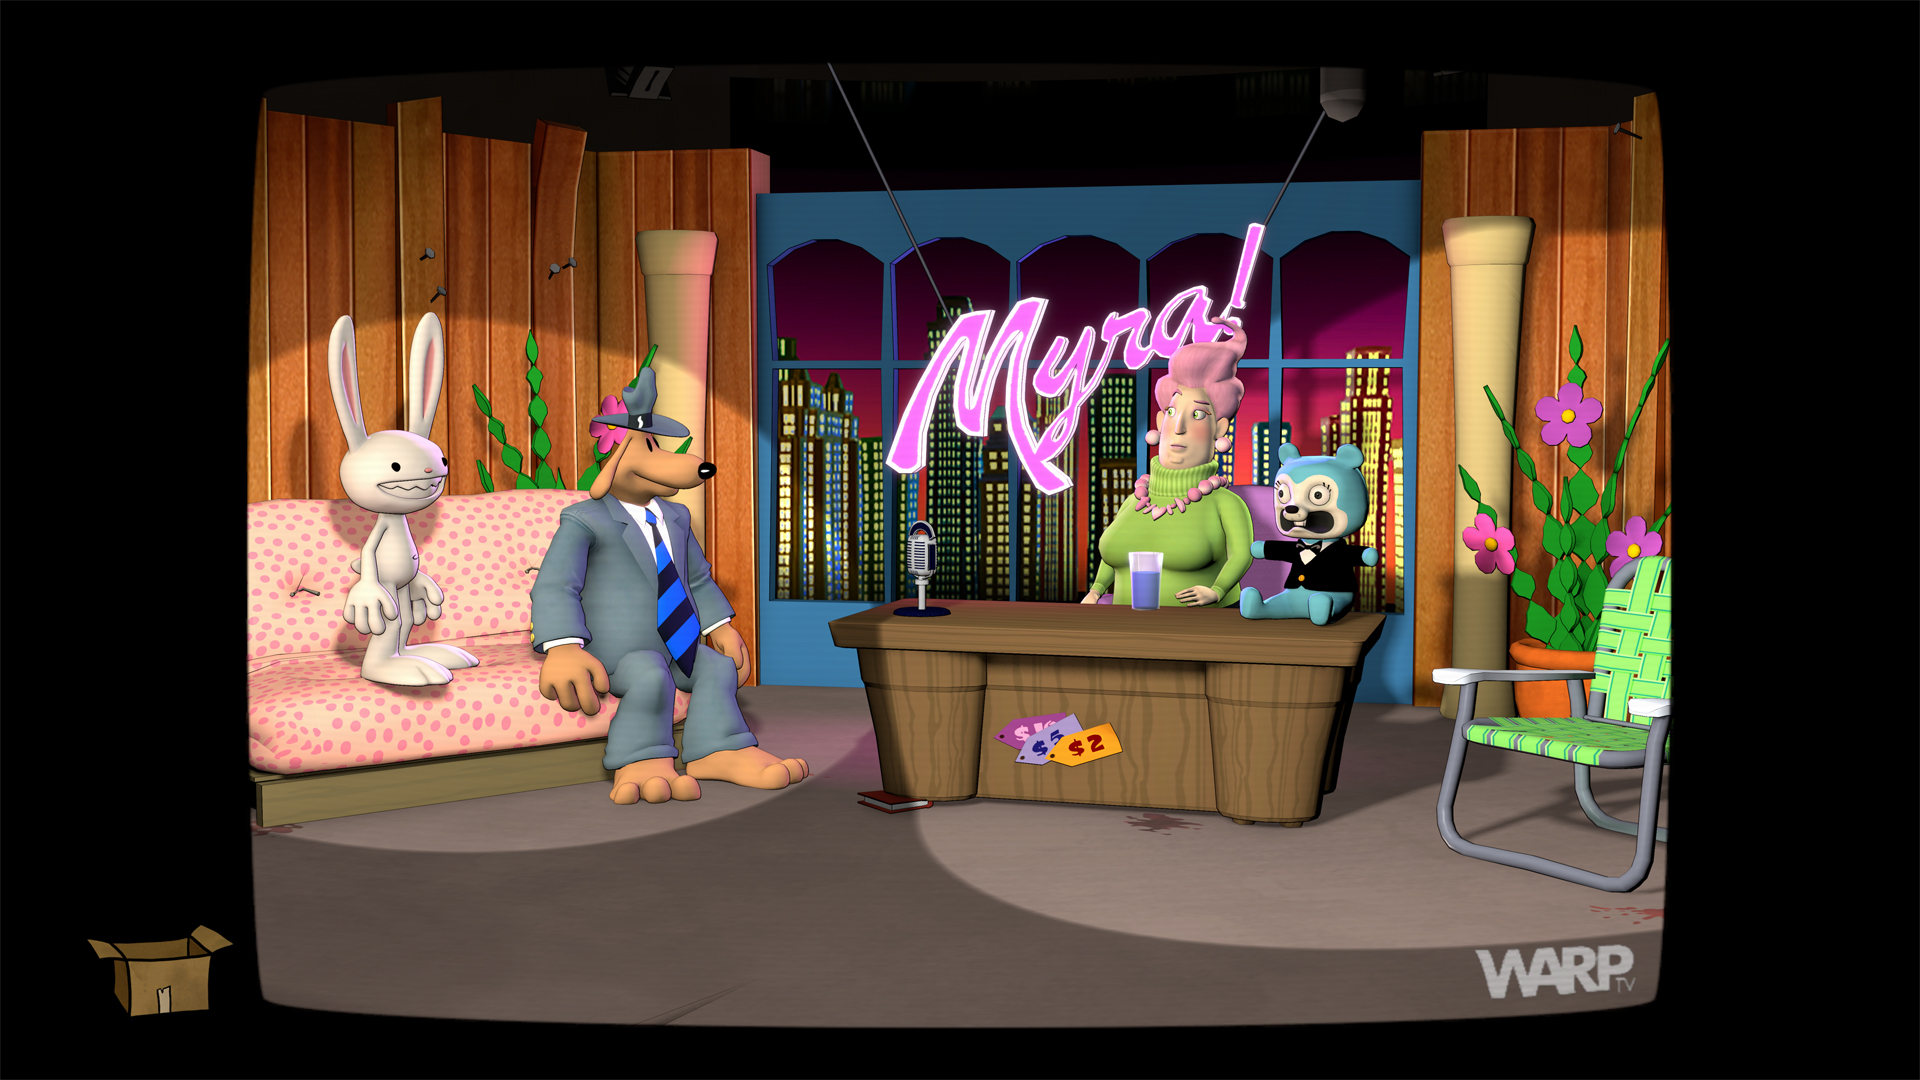 Sam and Max are being interviewed by a talk show host in Sam & Max Save The World - Remastered